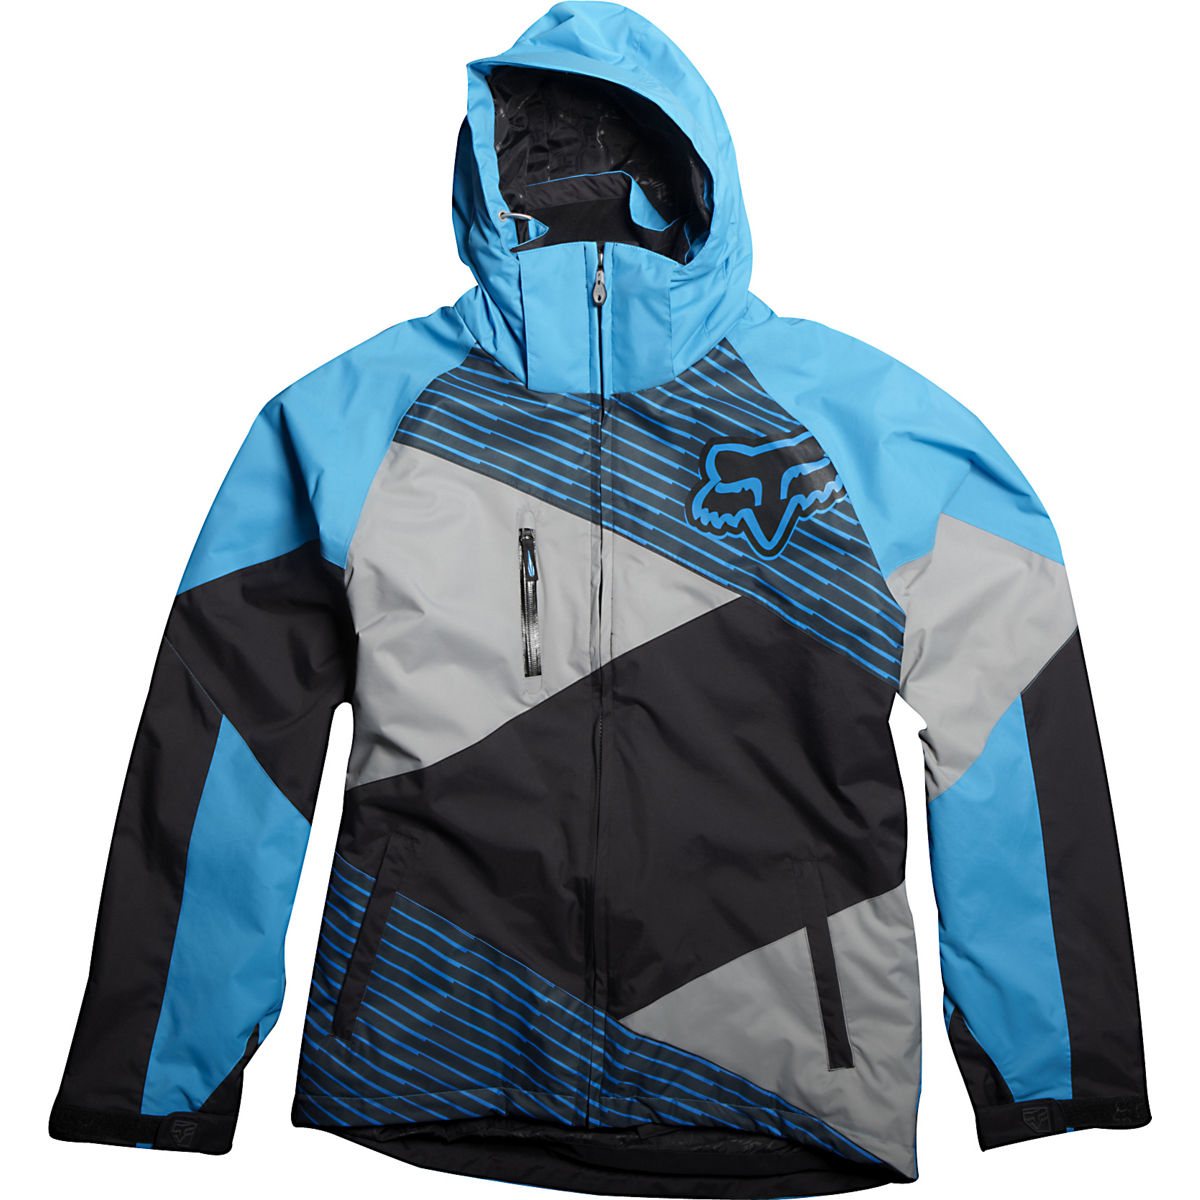 46055-582 Fox Racing FX2 Men's Winter Jacket Blue Black Waterdichte regenjas Jacke Veste